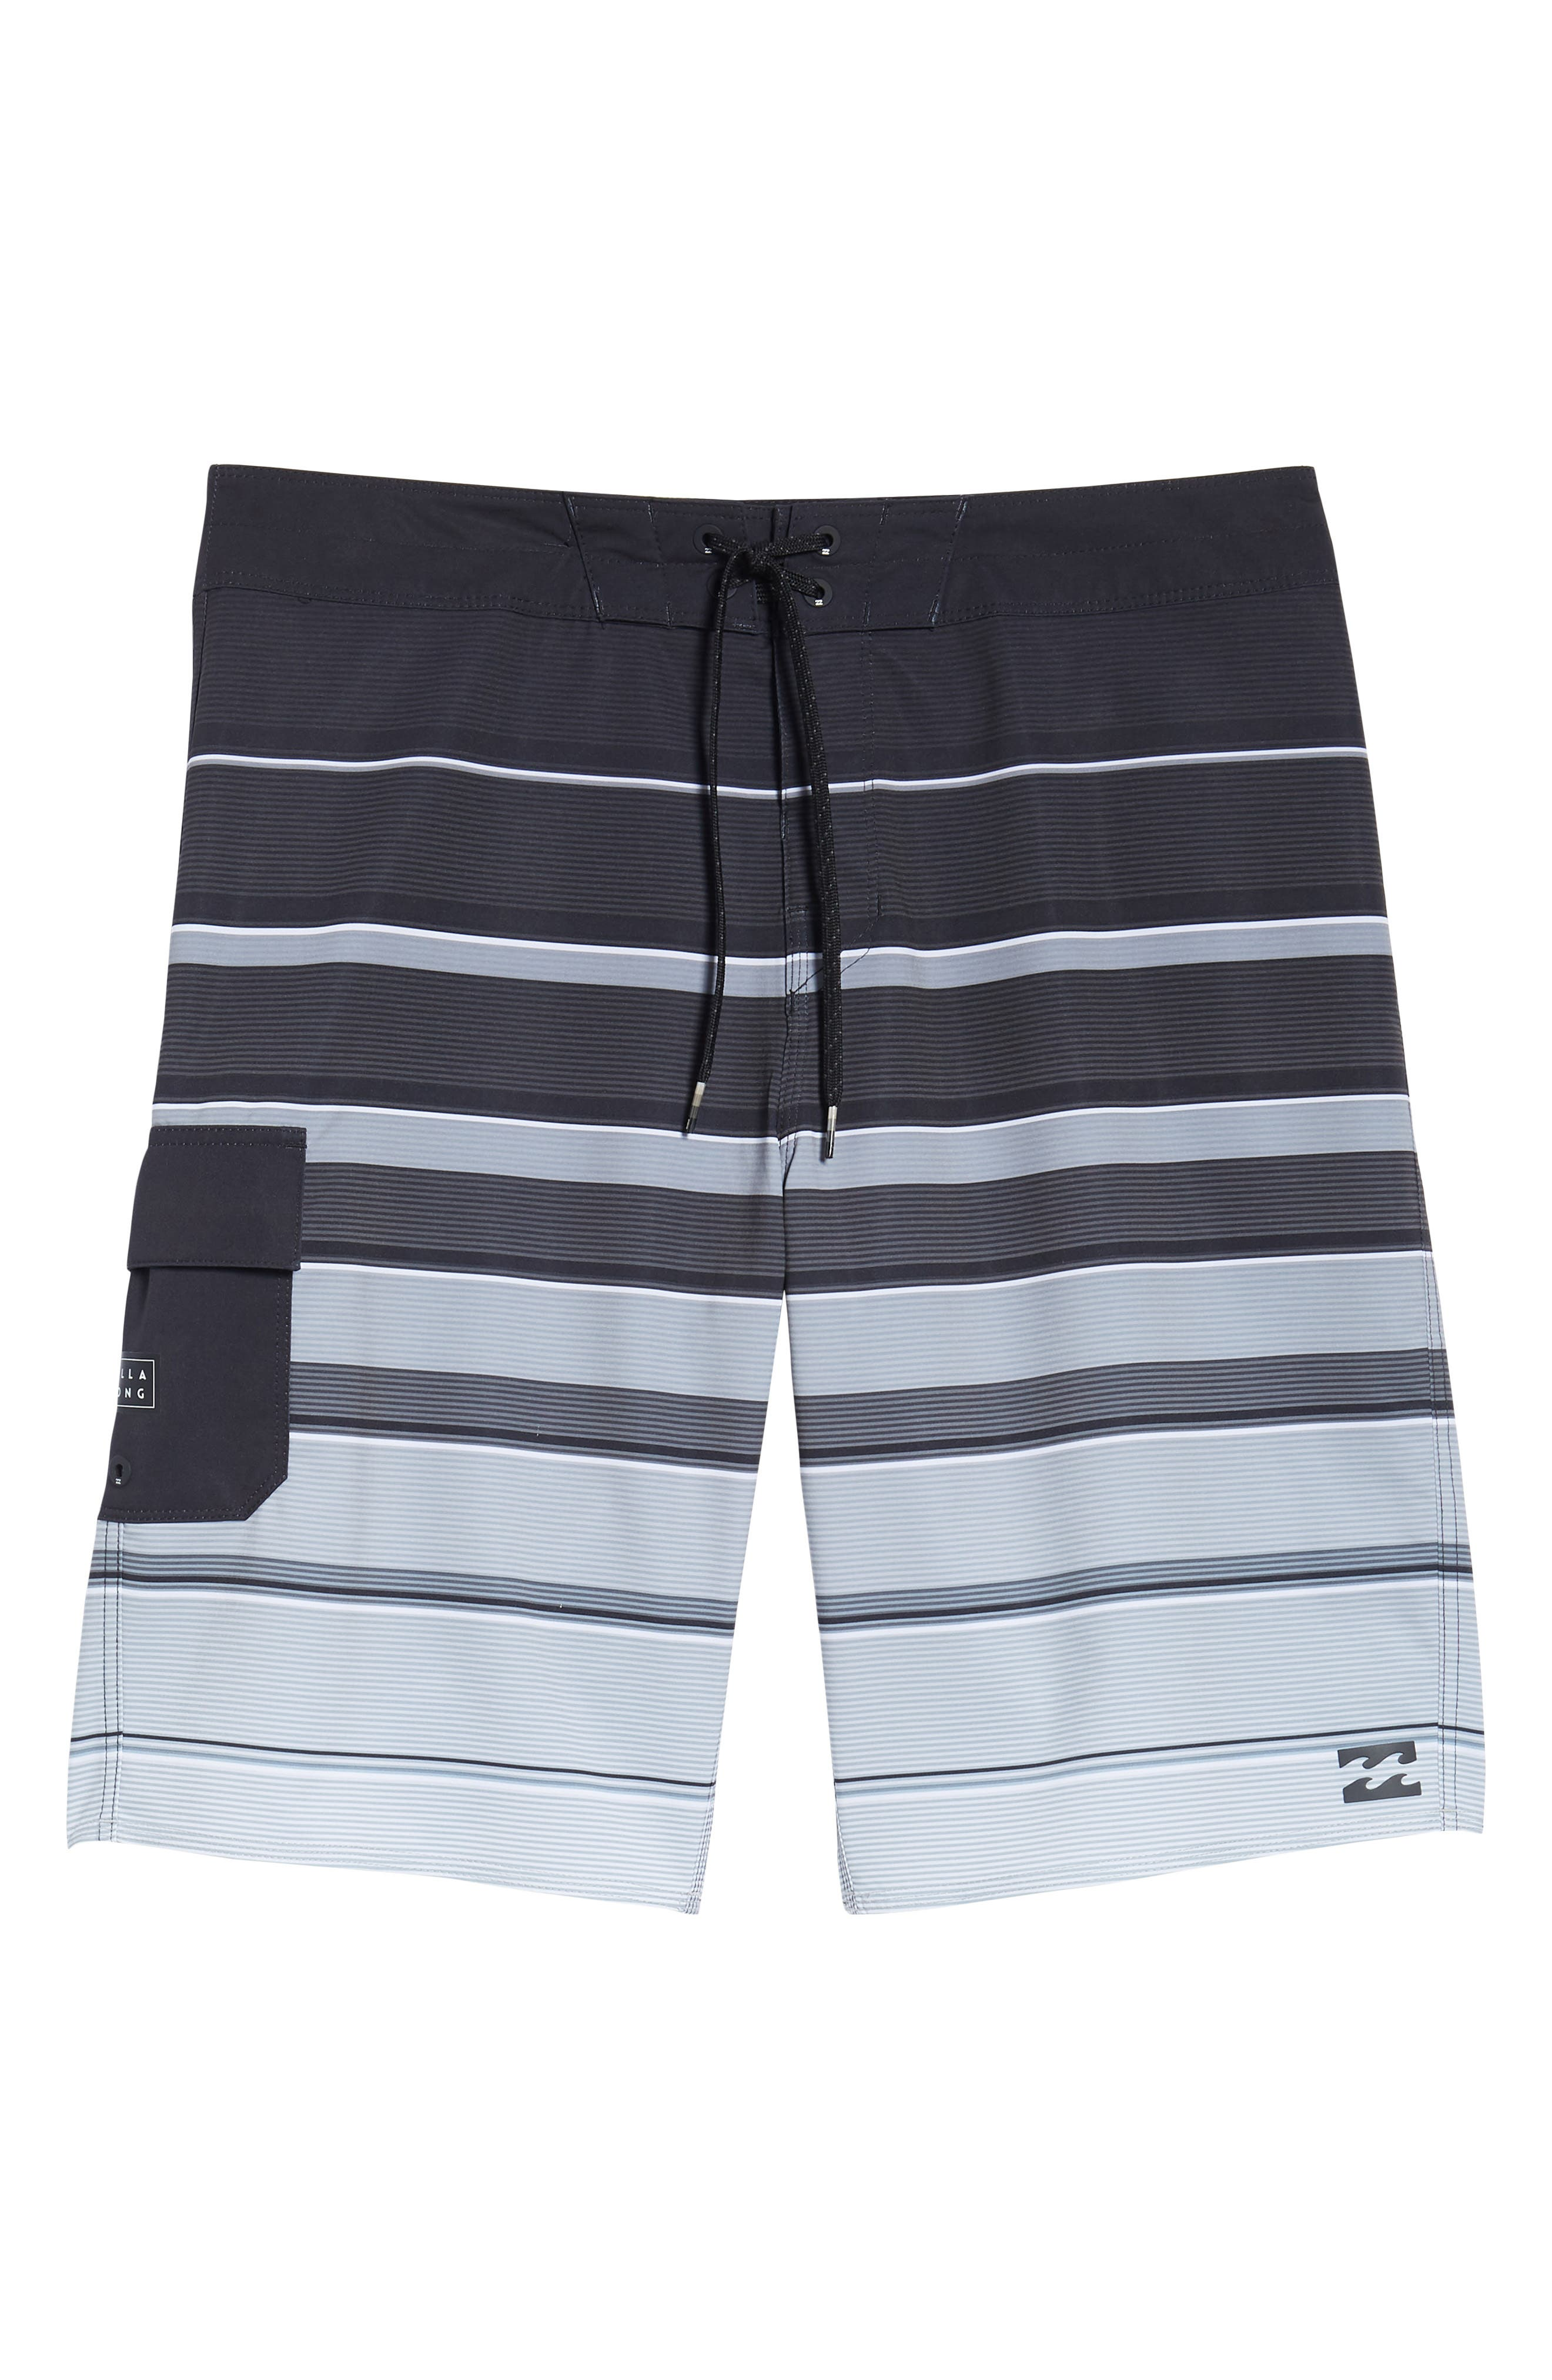 All Day X Stripe Board Shorts,                             Alternate thumbnail 6, color,                             001